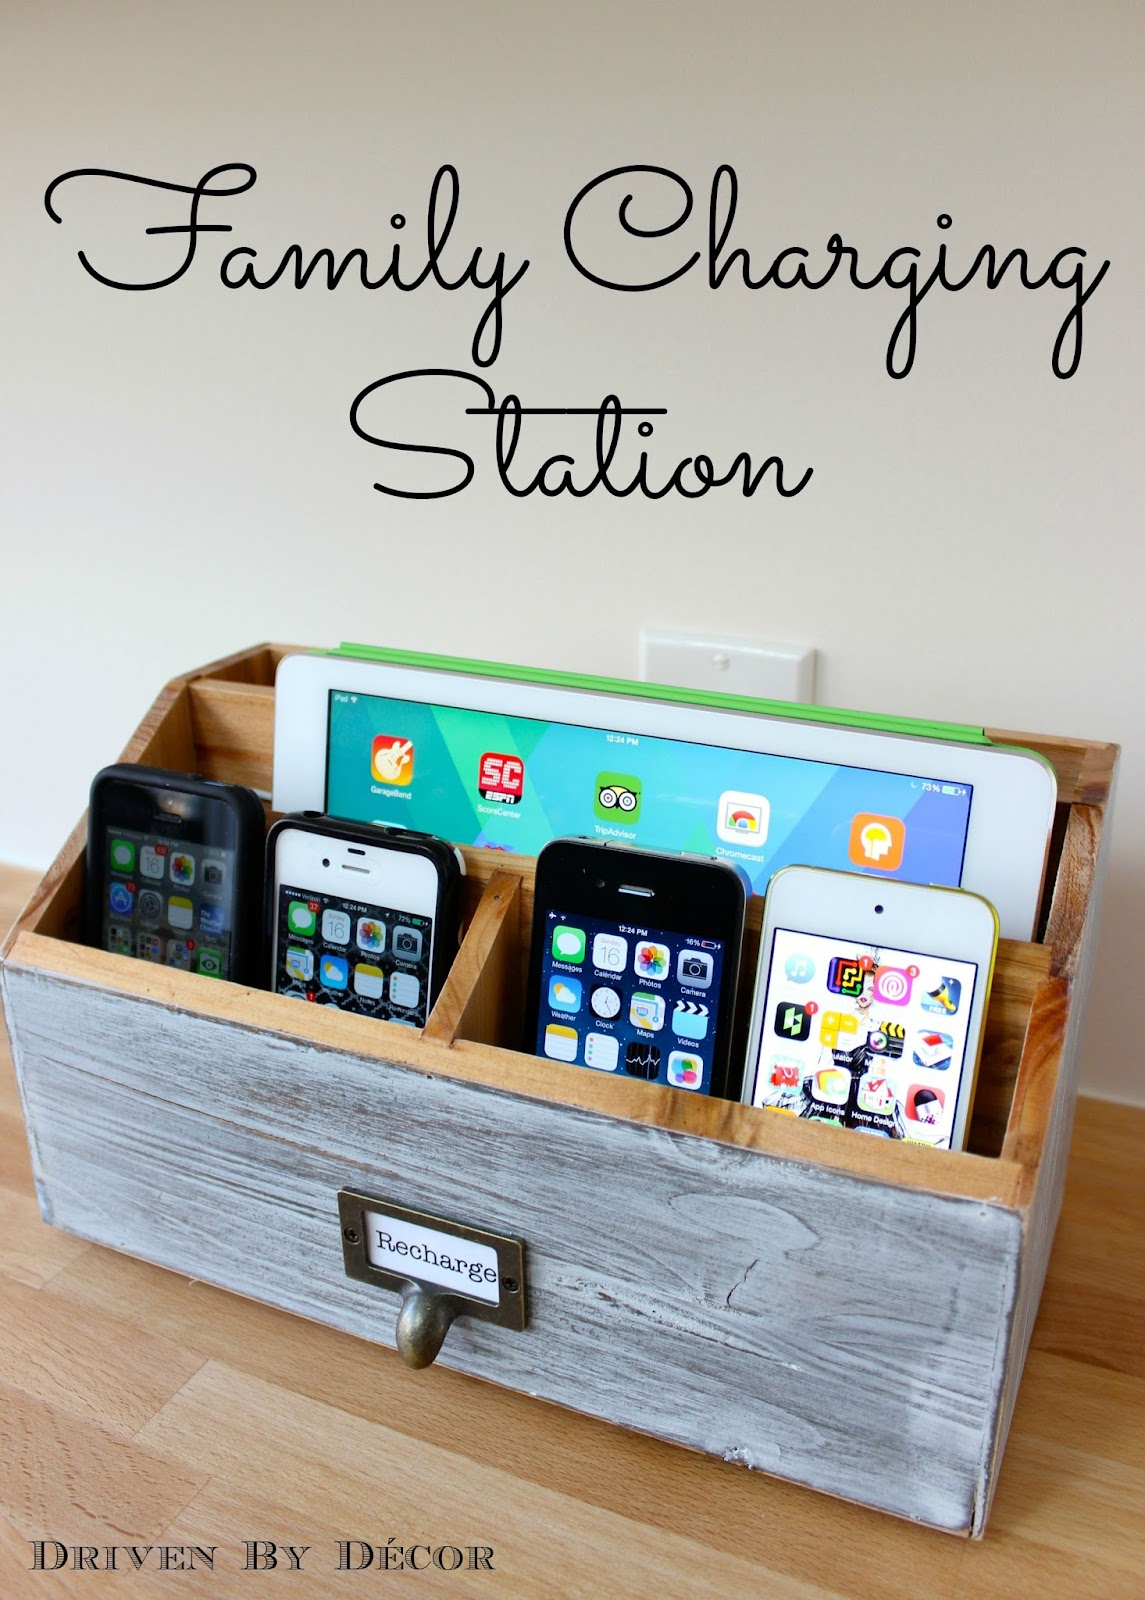 House Charging Station Family Charging Station Driven By Decor